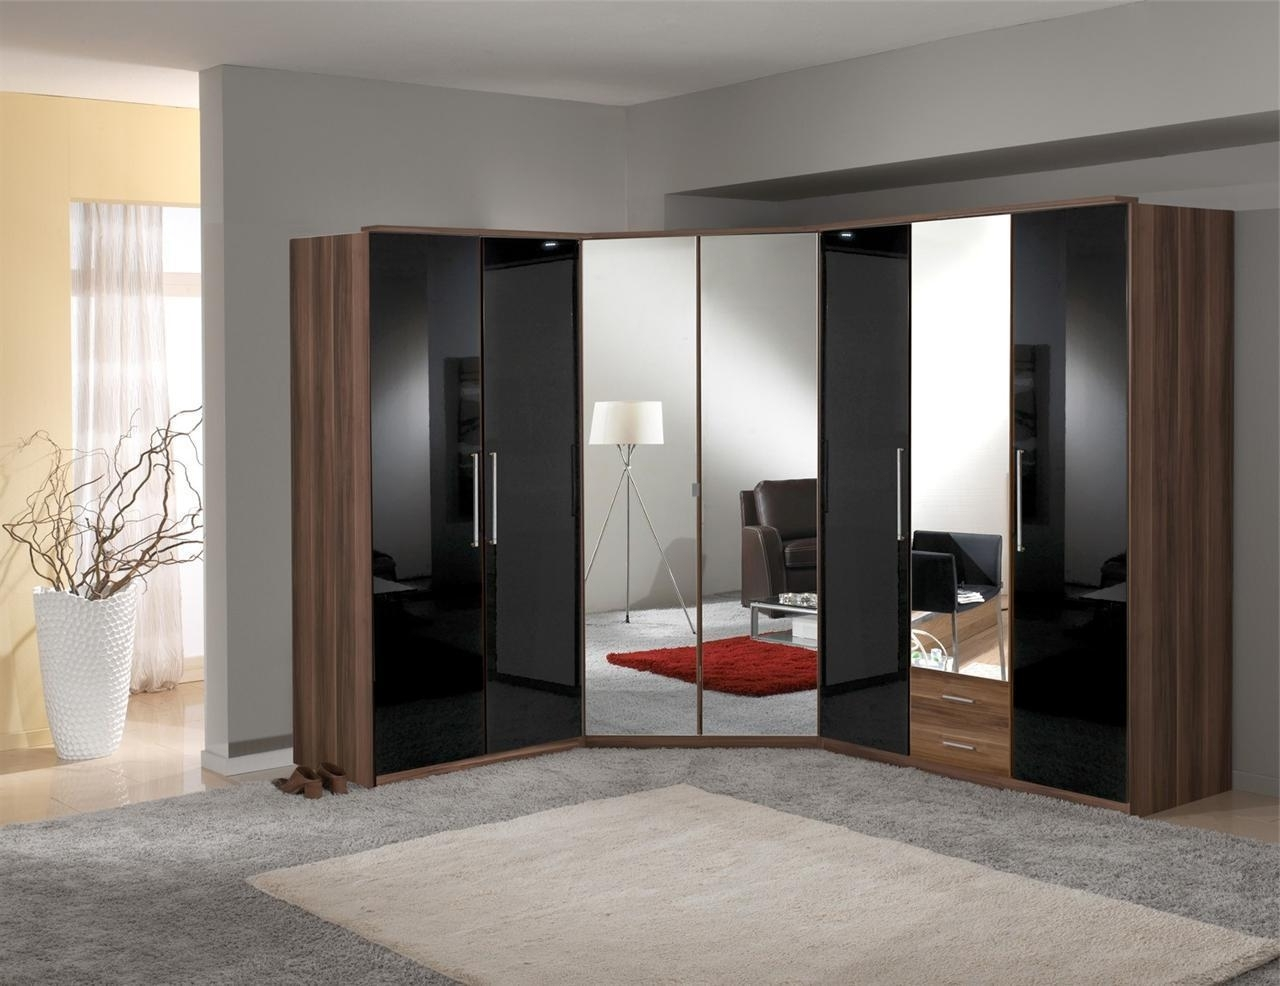 Latest Best Mirrored Corner Wardrobe Deals (View 9 of 15)